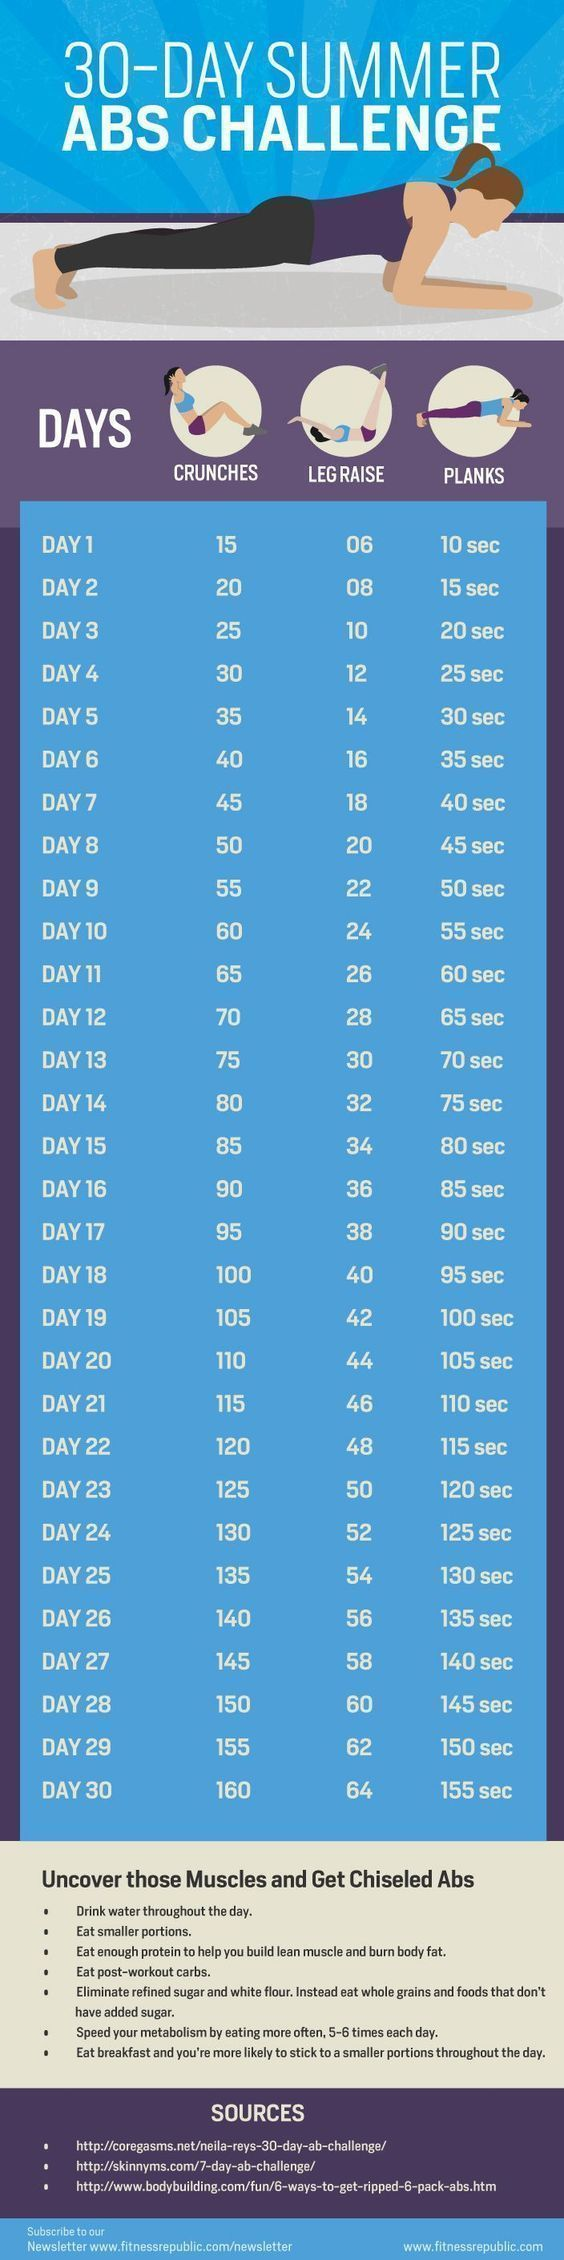 1200 Calorie Diet Menu - 7 Day Lose 20 Pounds Weight Loss Meal Plan Visit us here   http://greenproduct.wixsite.com/3wds